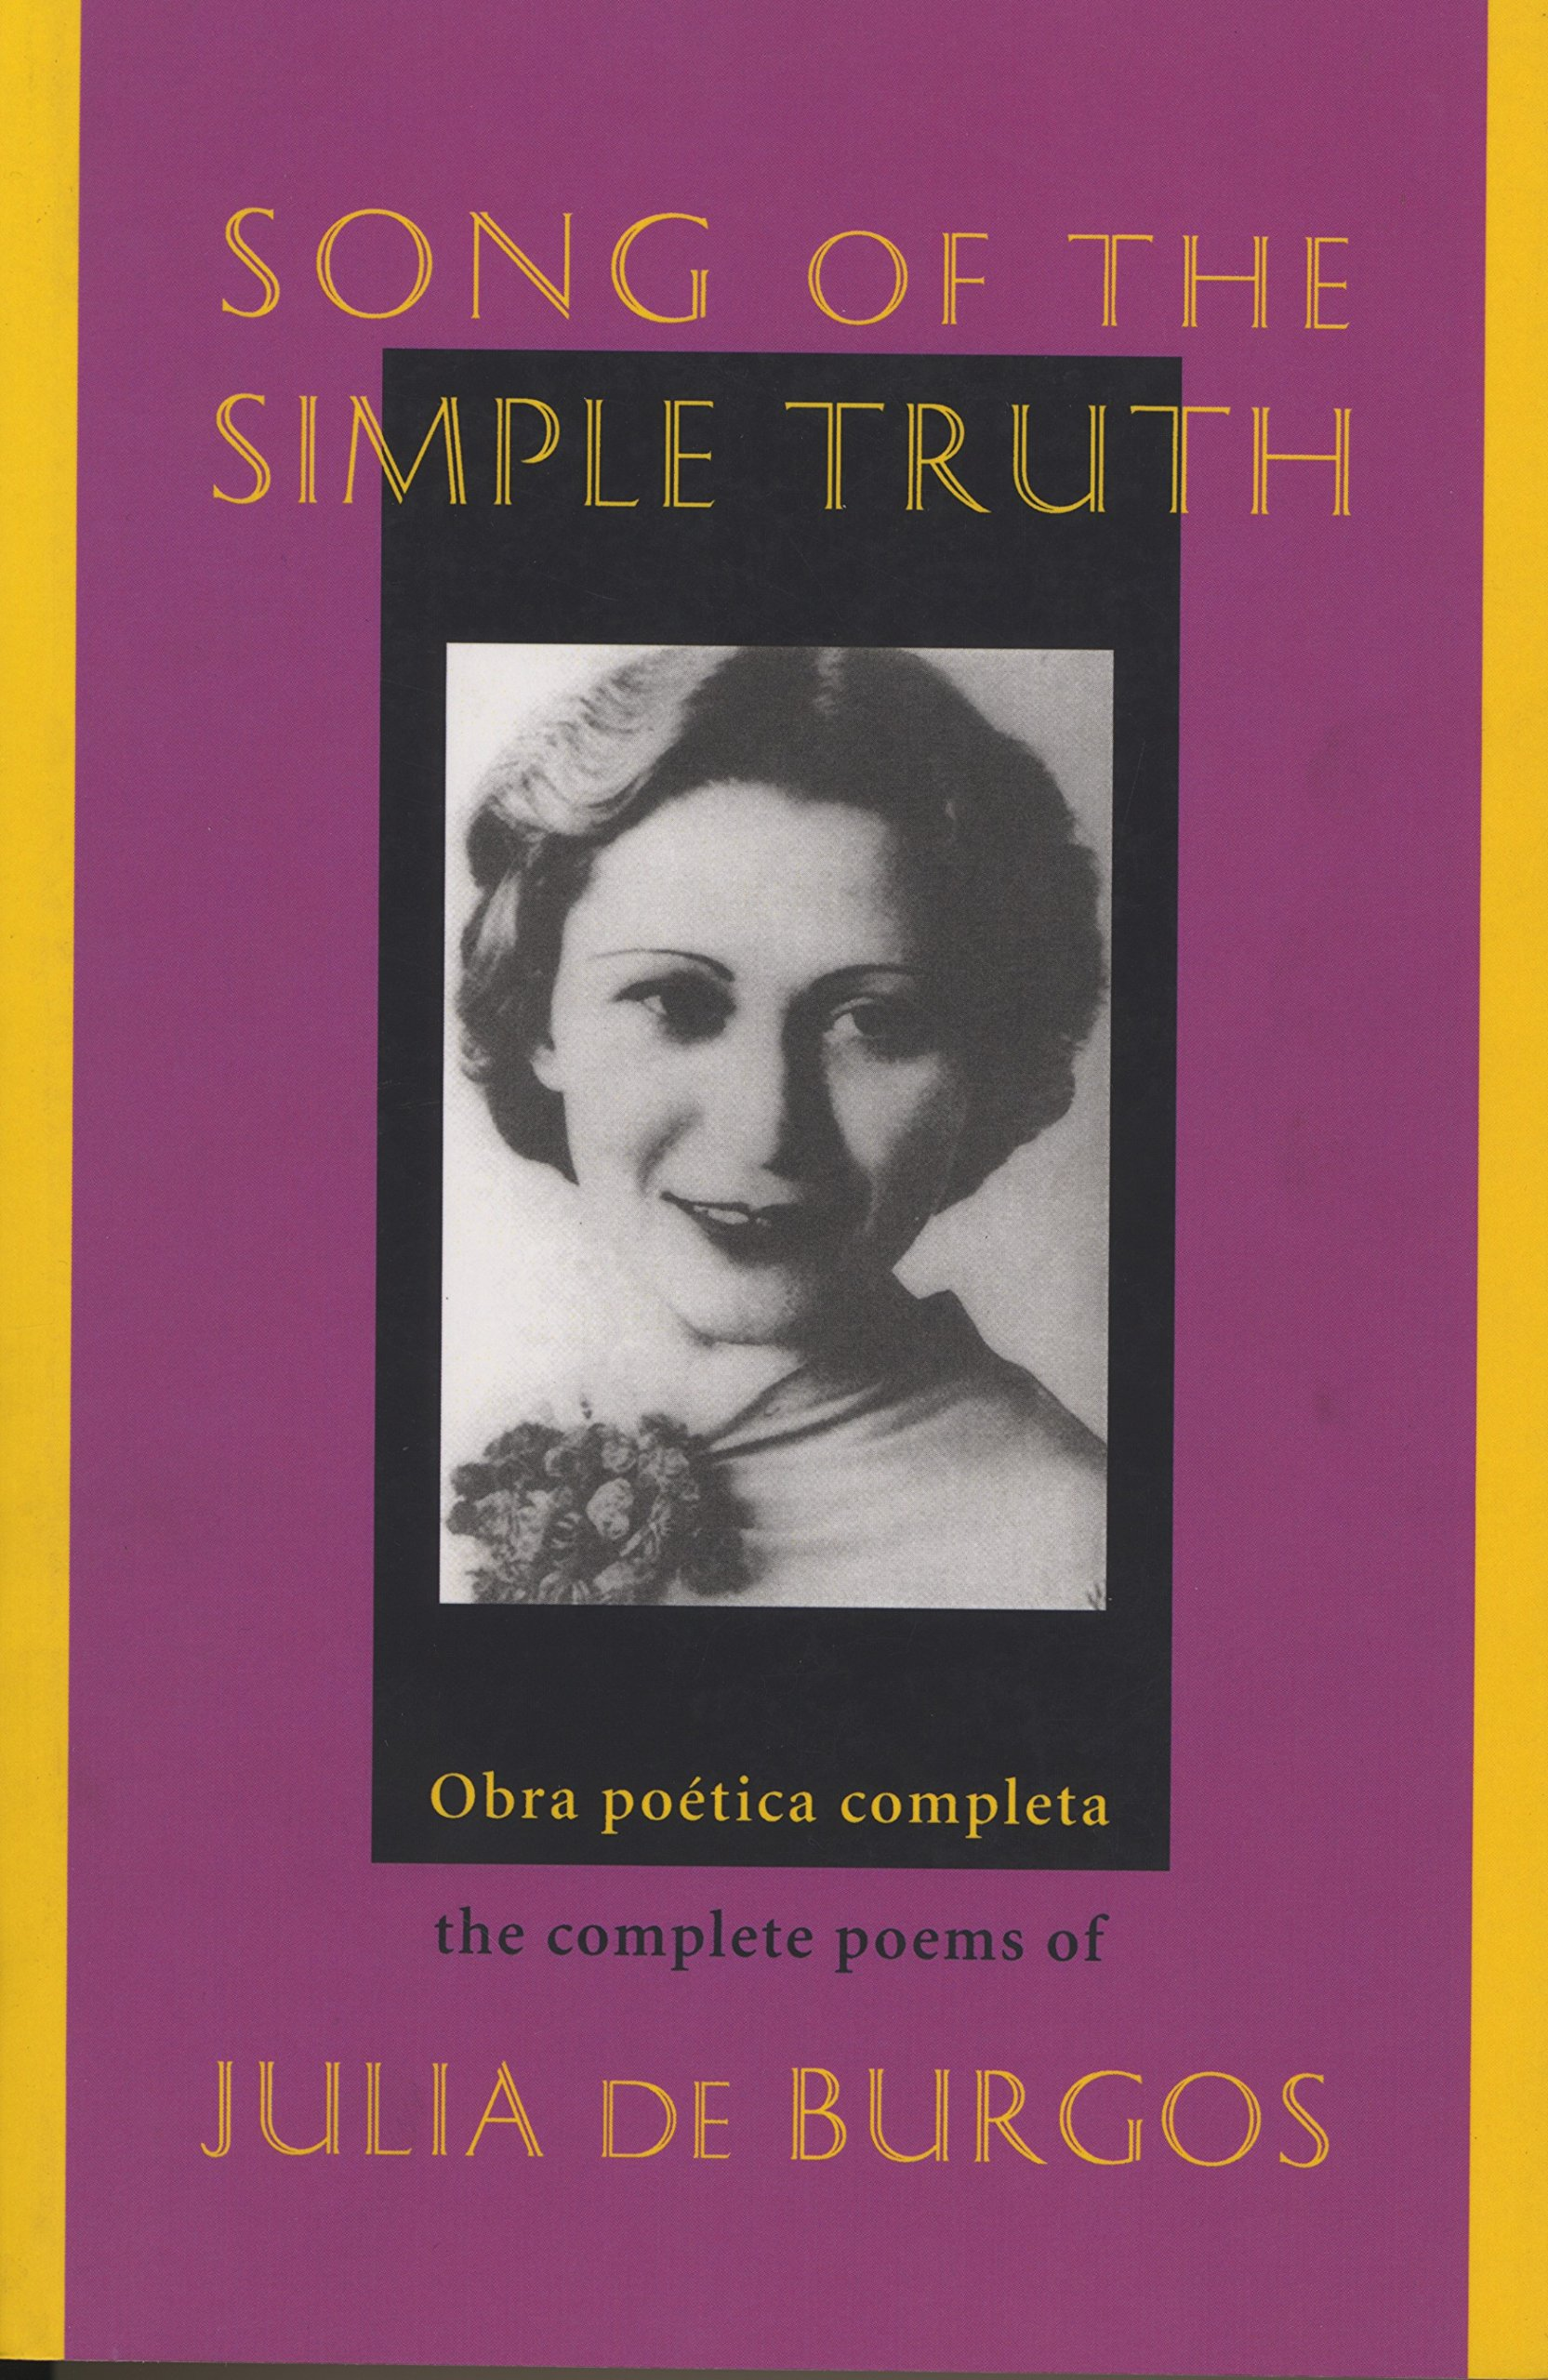 Song of the Simple Truth: The Complete Poems of Julia de Burgos (Dual Language Edition:: Spanish, English) (Spanish and English Edition) by Curbstone Books